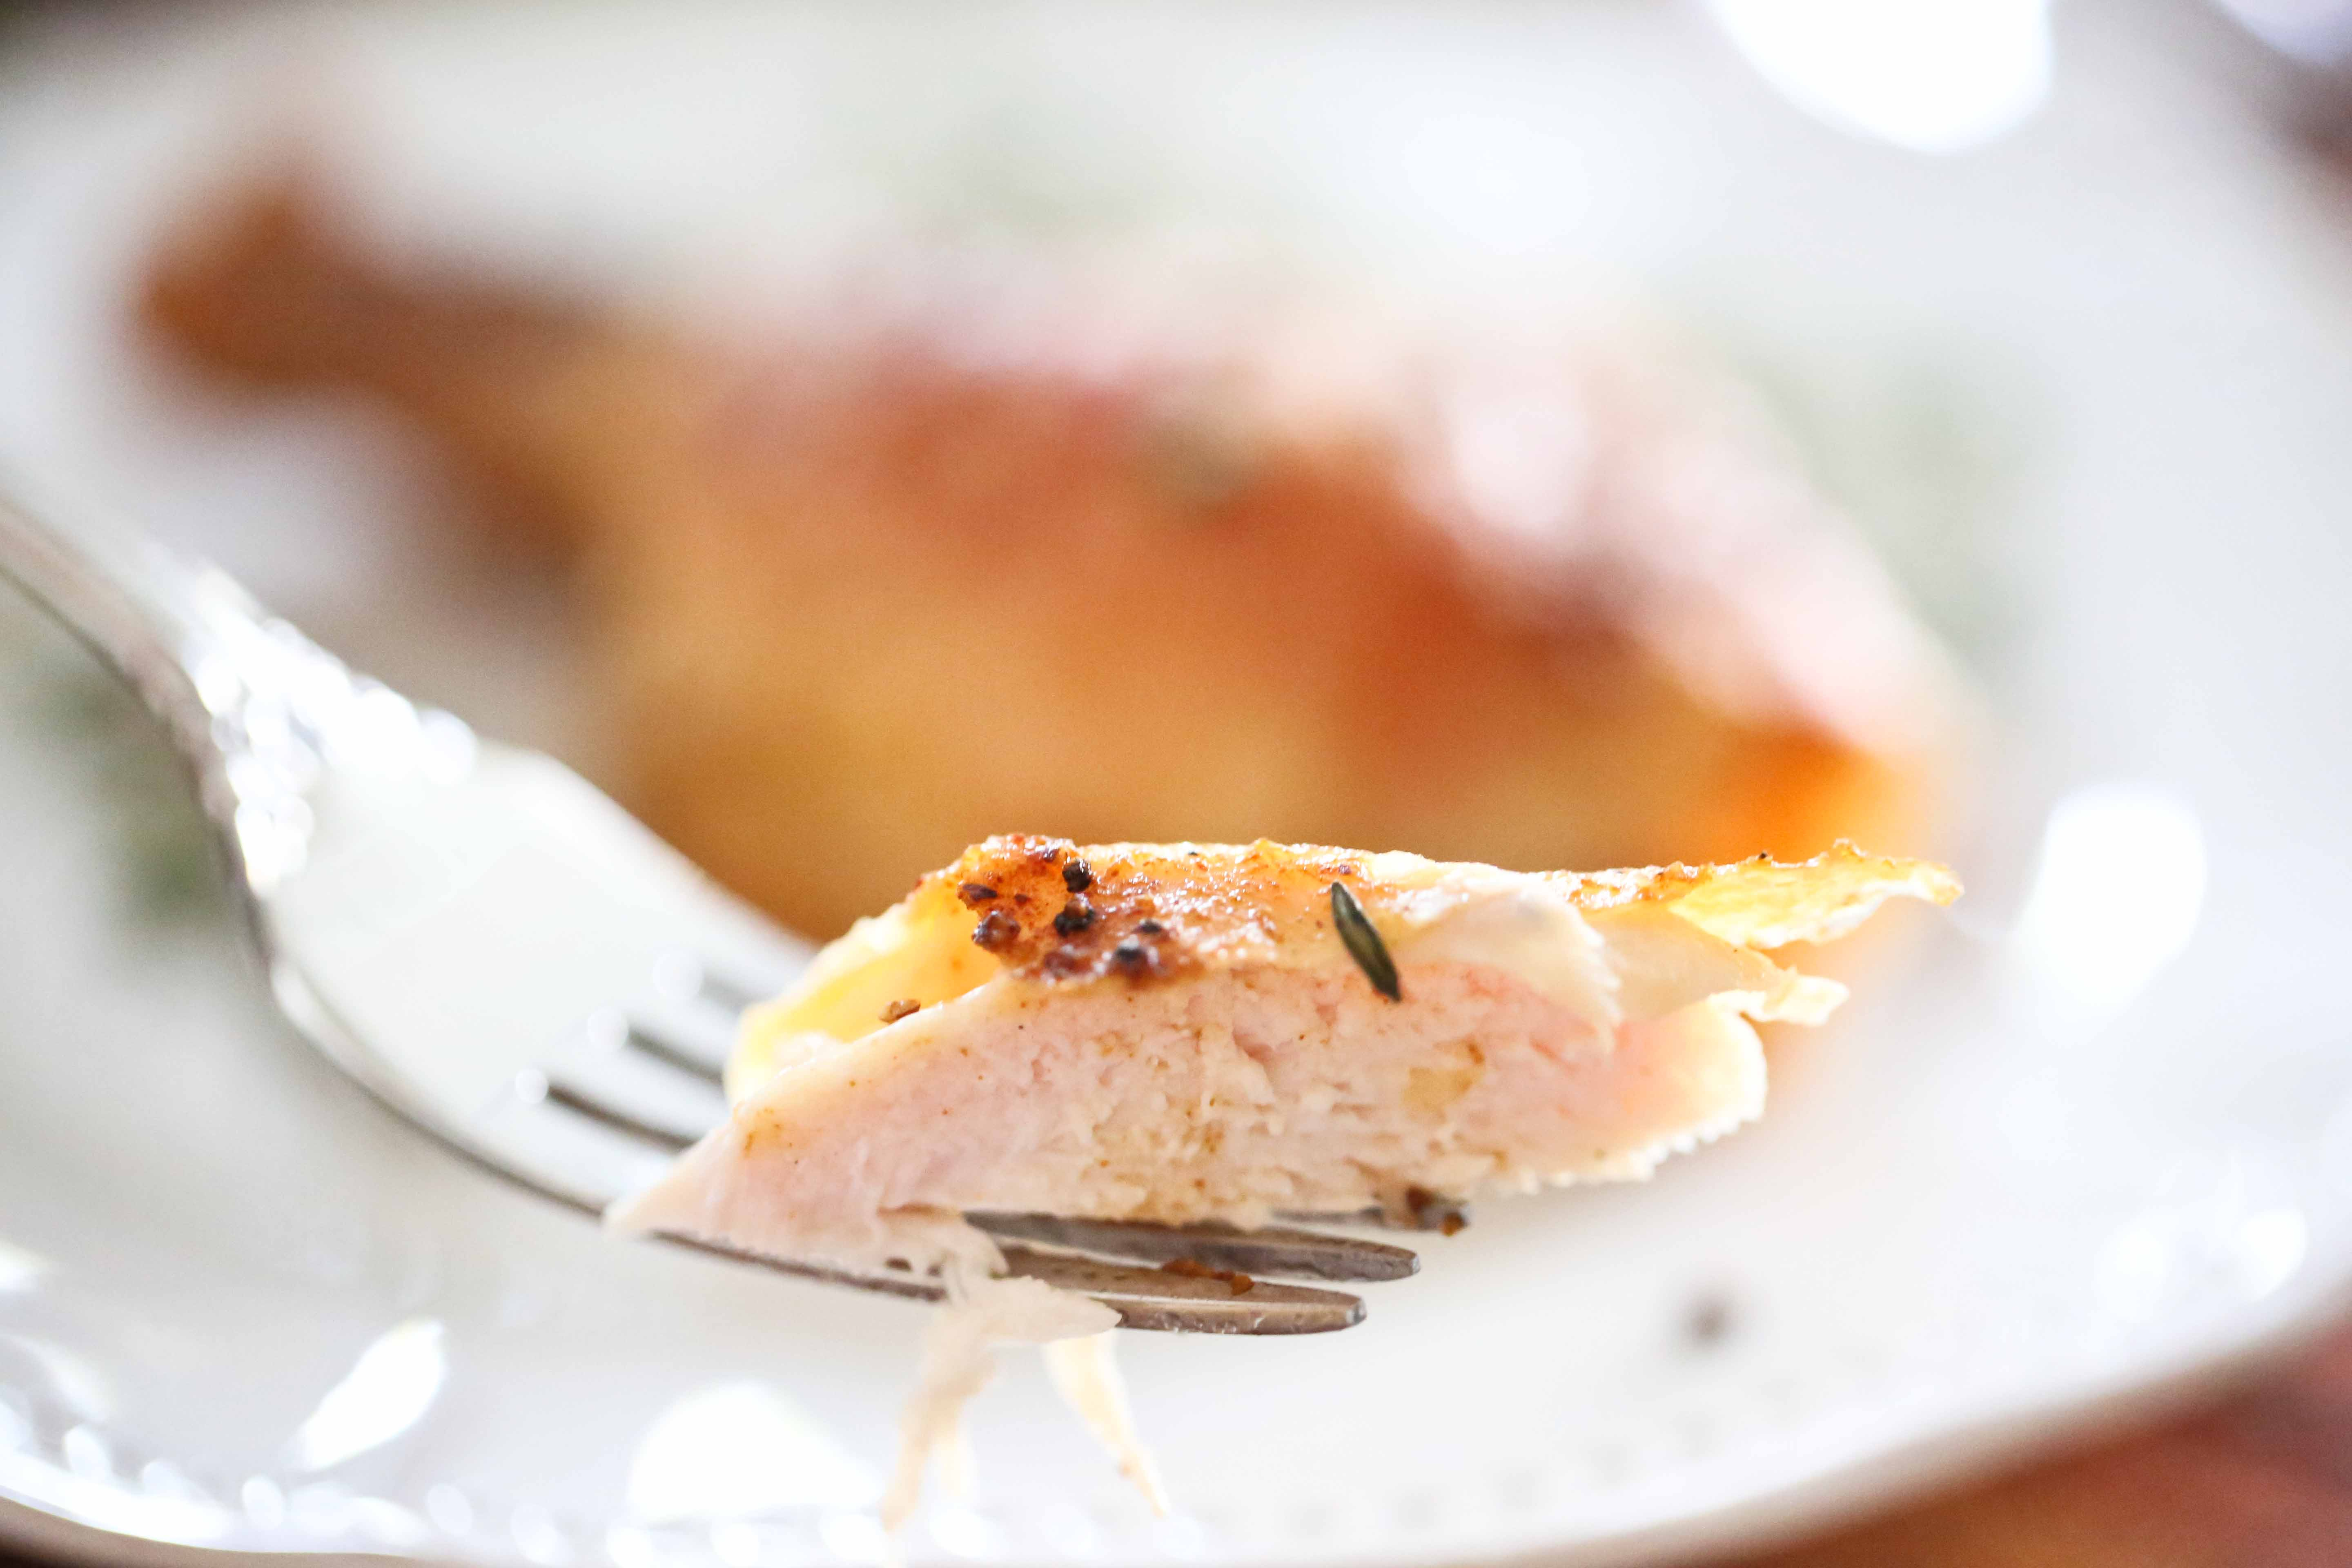 a bite of Roasted Chicken